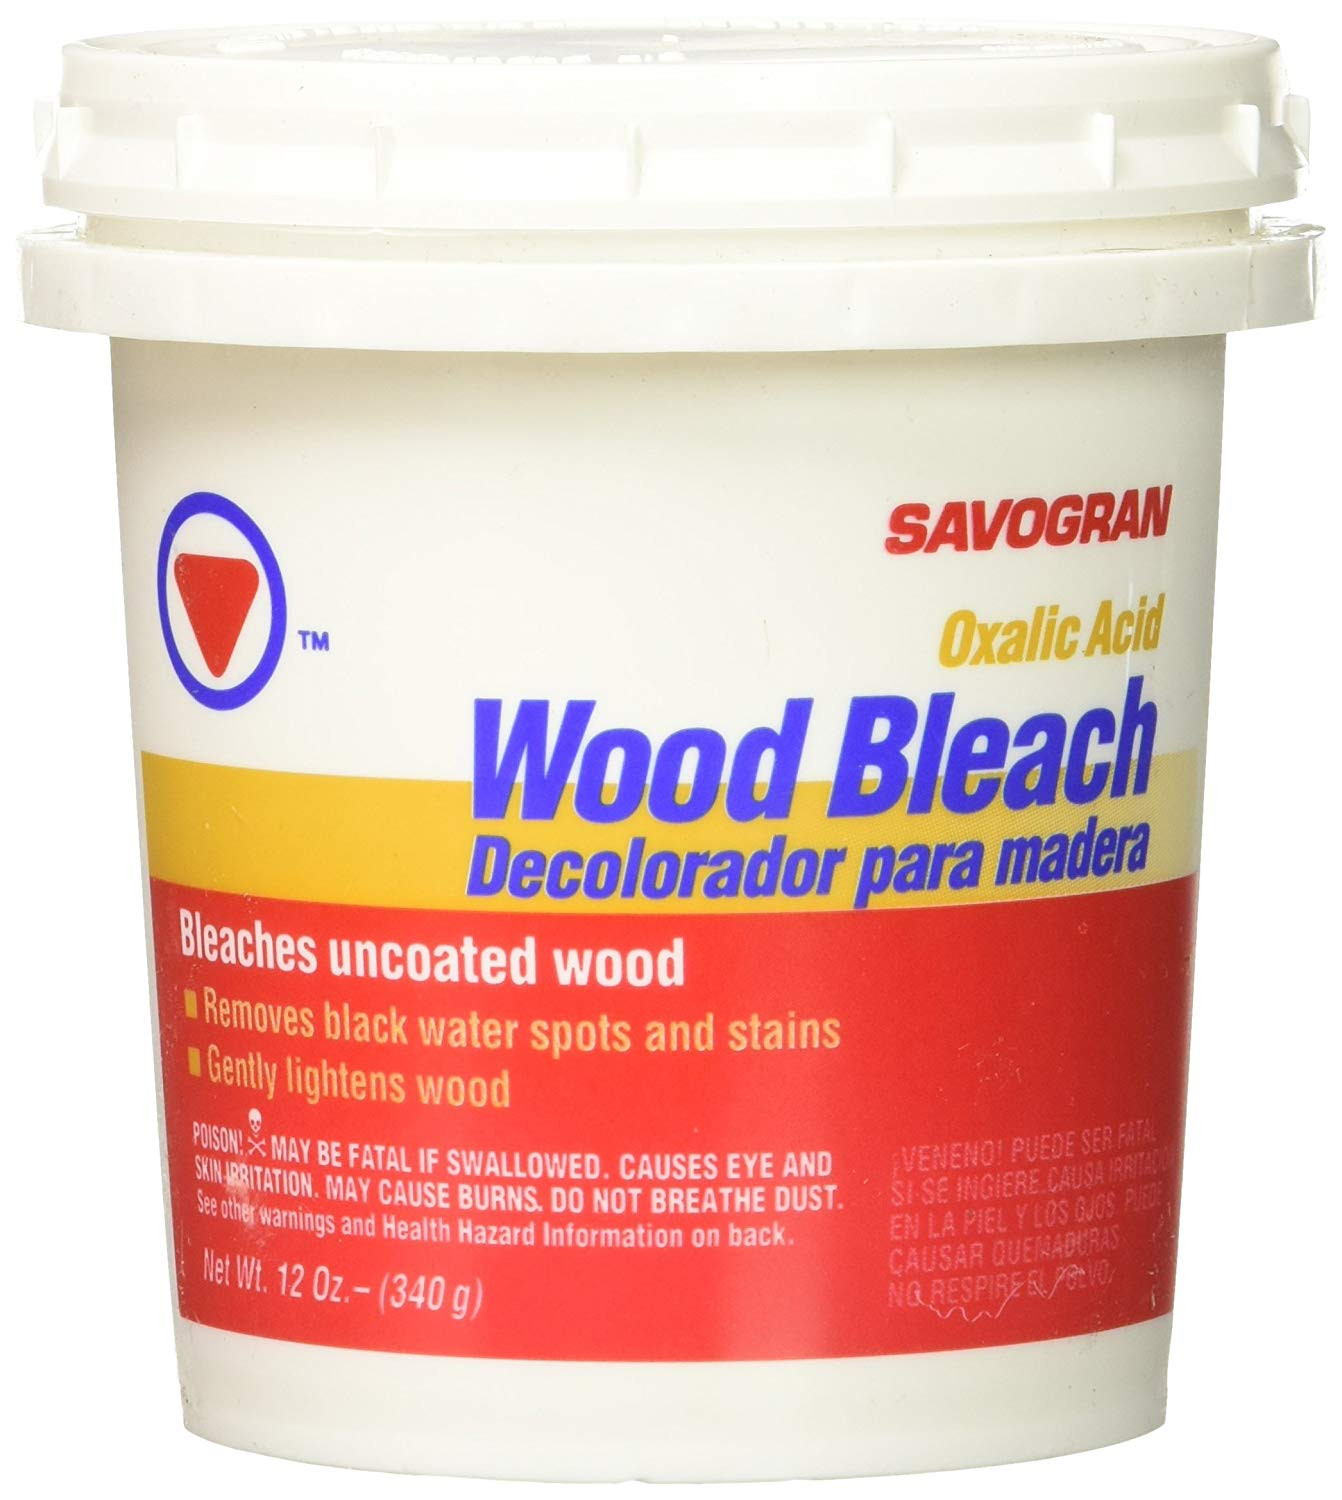 Ace Hardwood Flooring Ri Of Amazon Com Savogran 10501 Wood Bleach 12 Oz Home Improvement within 8115t9hddml Sl1500